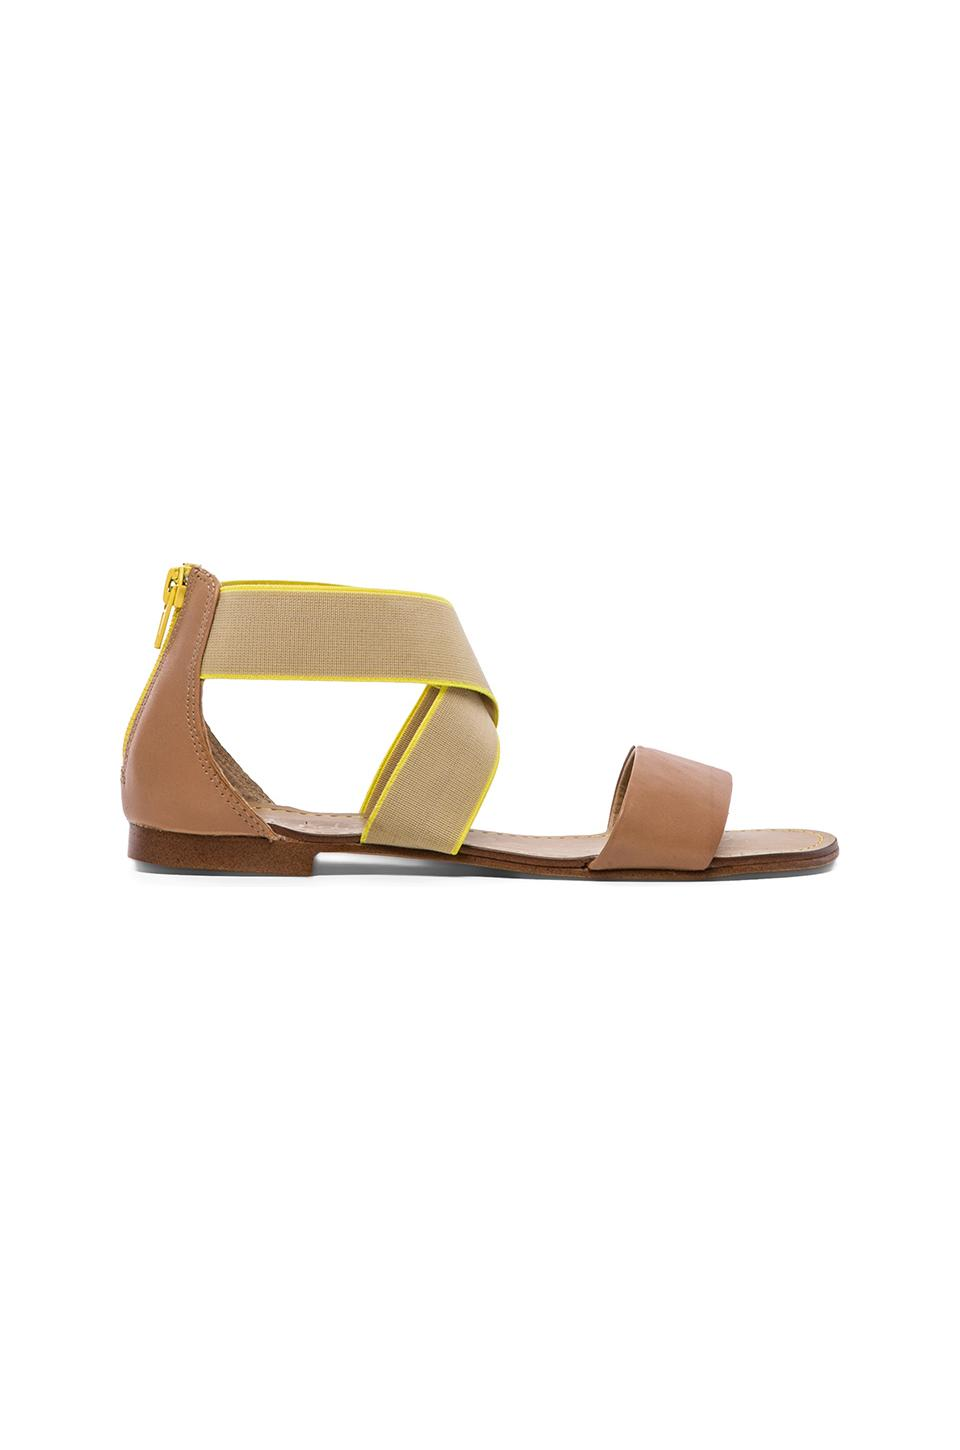 Splendid Congo Flat Sandals in Light Tan